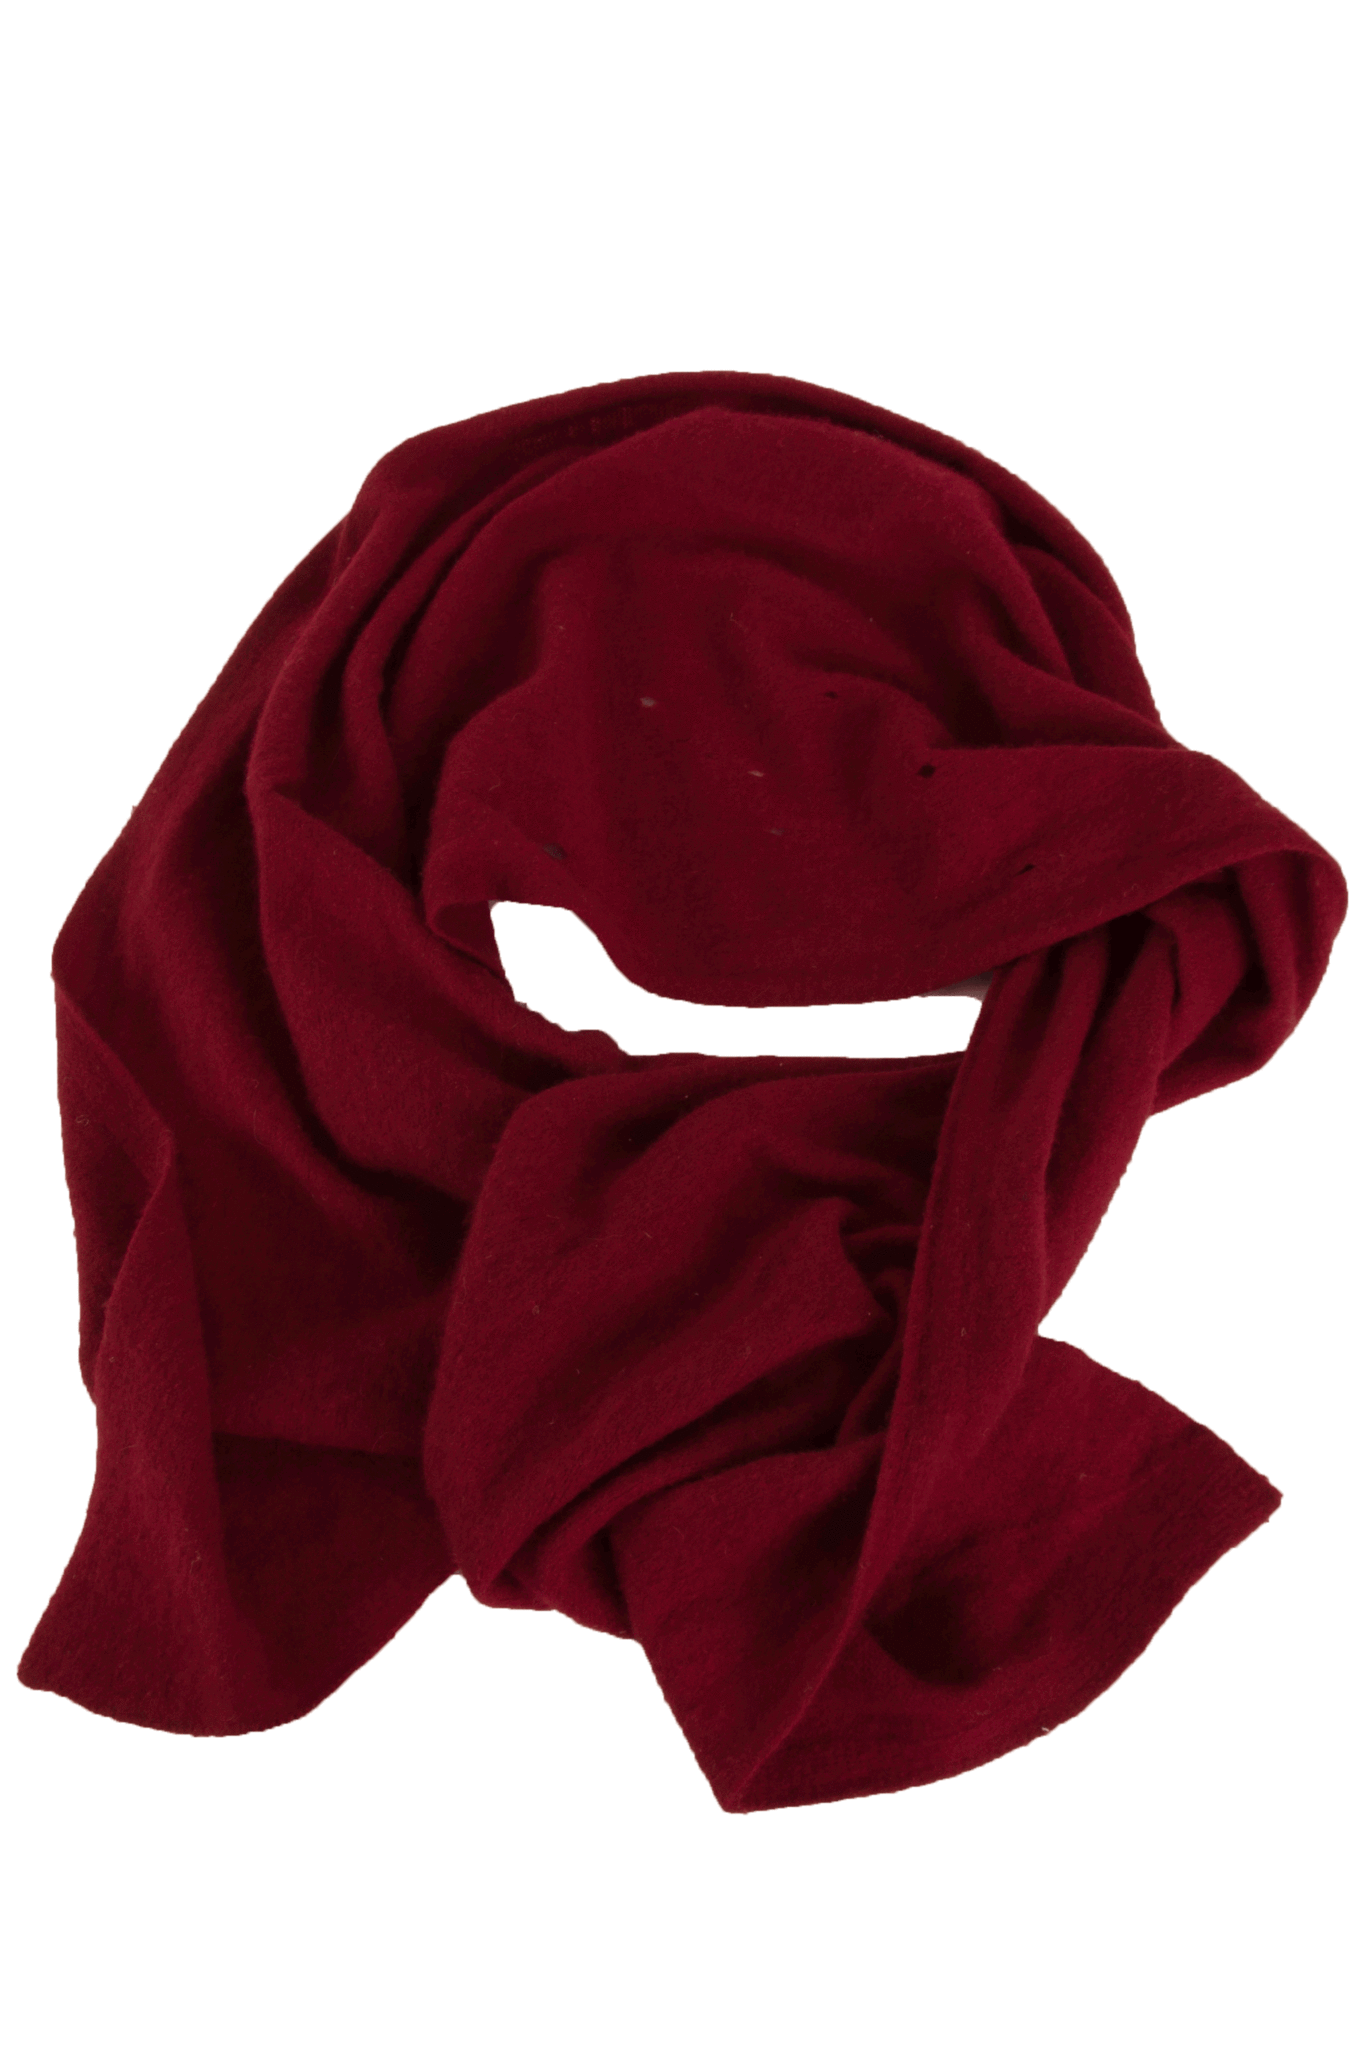 cashmere scarf in red